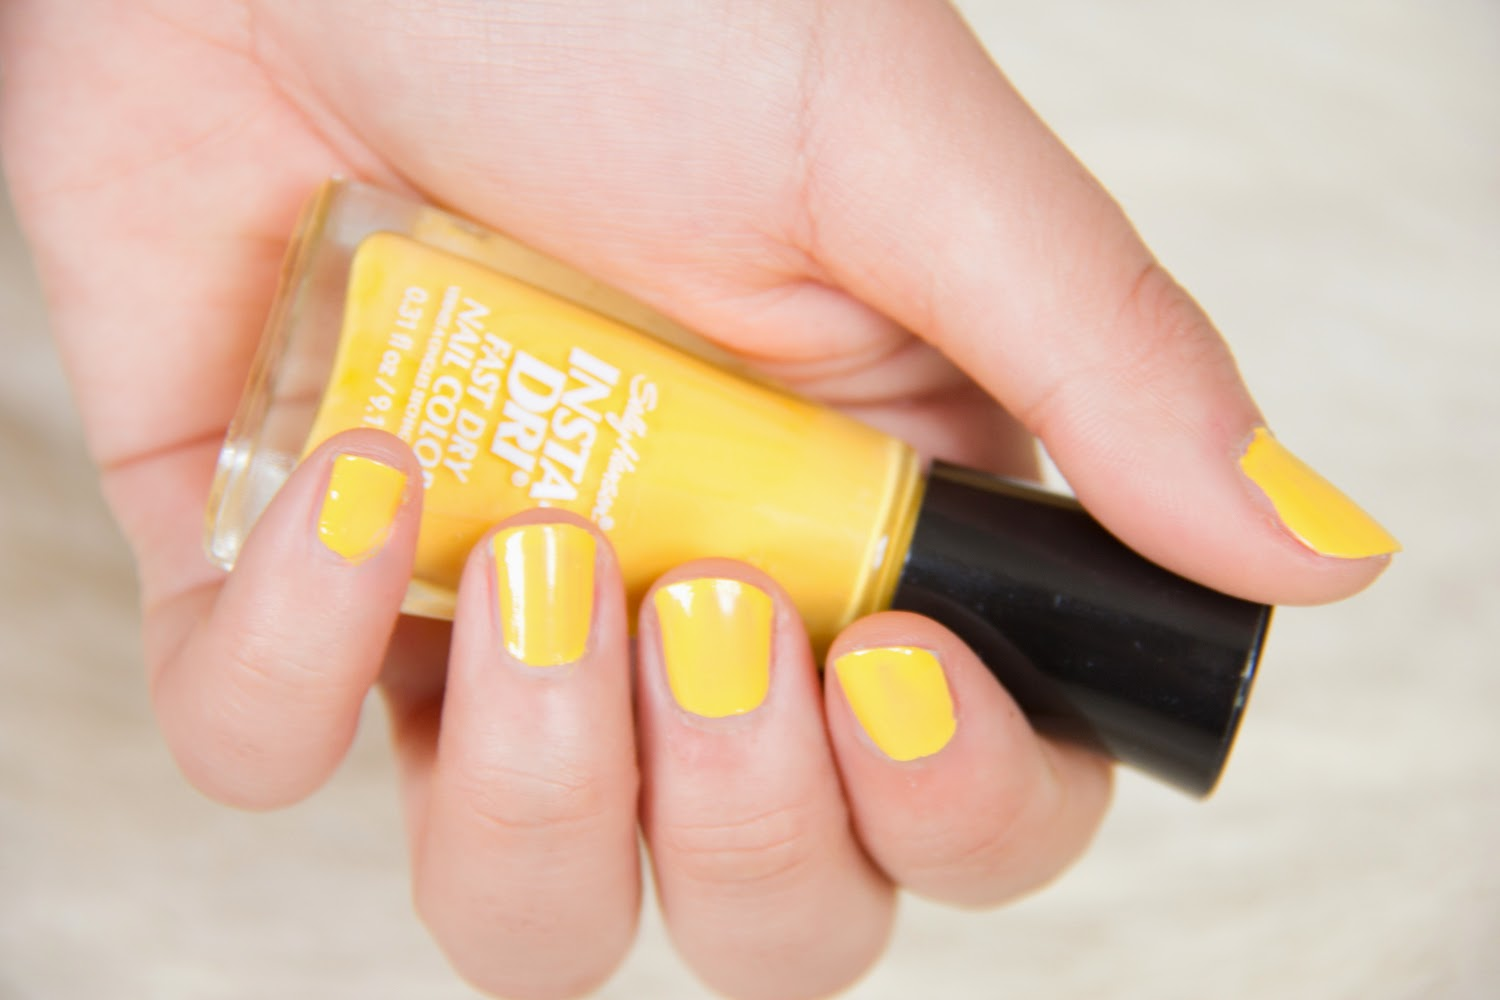 Insta-dry, shoppers-drug-mart-nail-polish, store, yellow